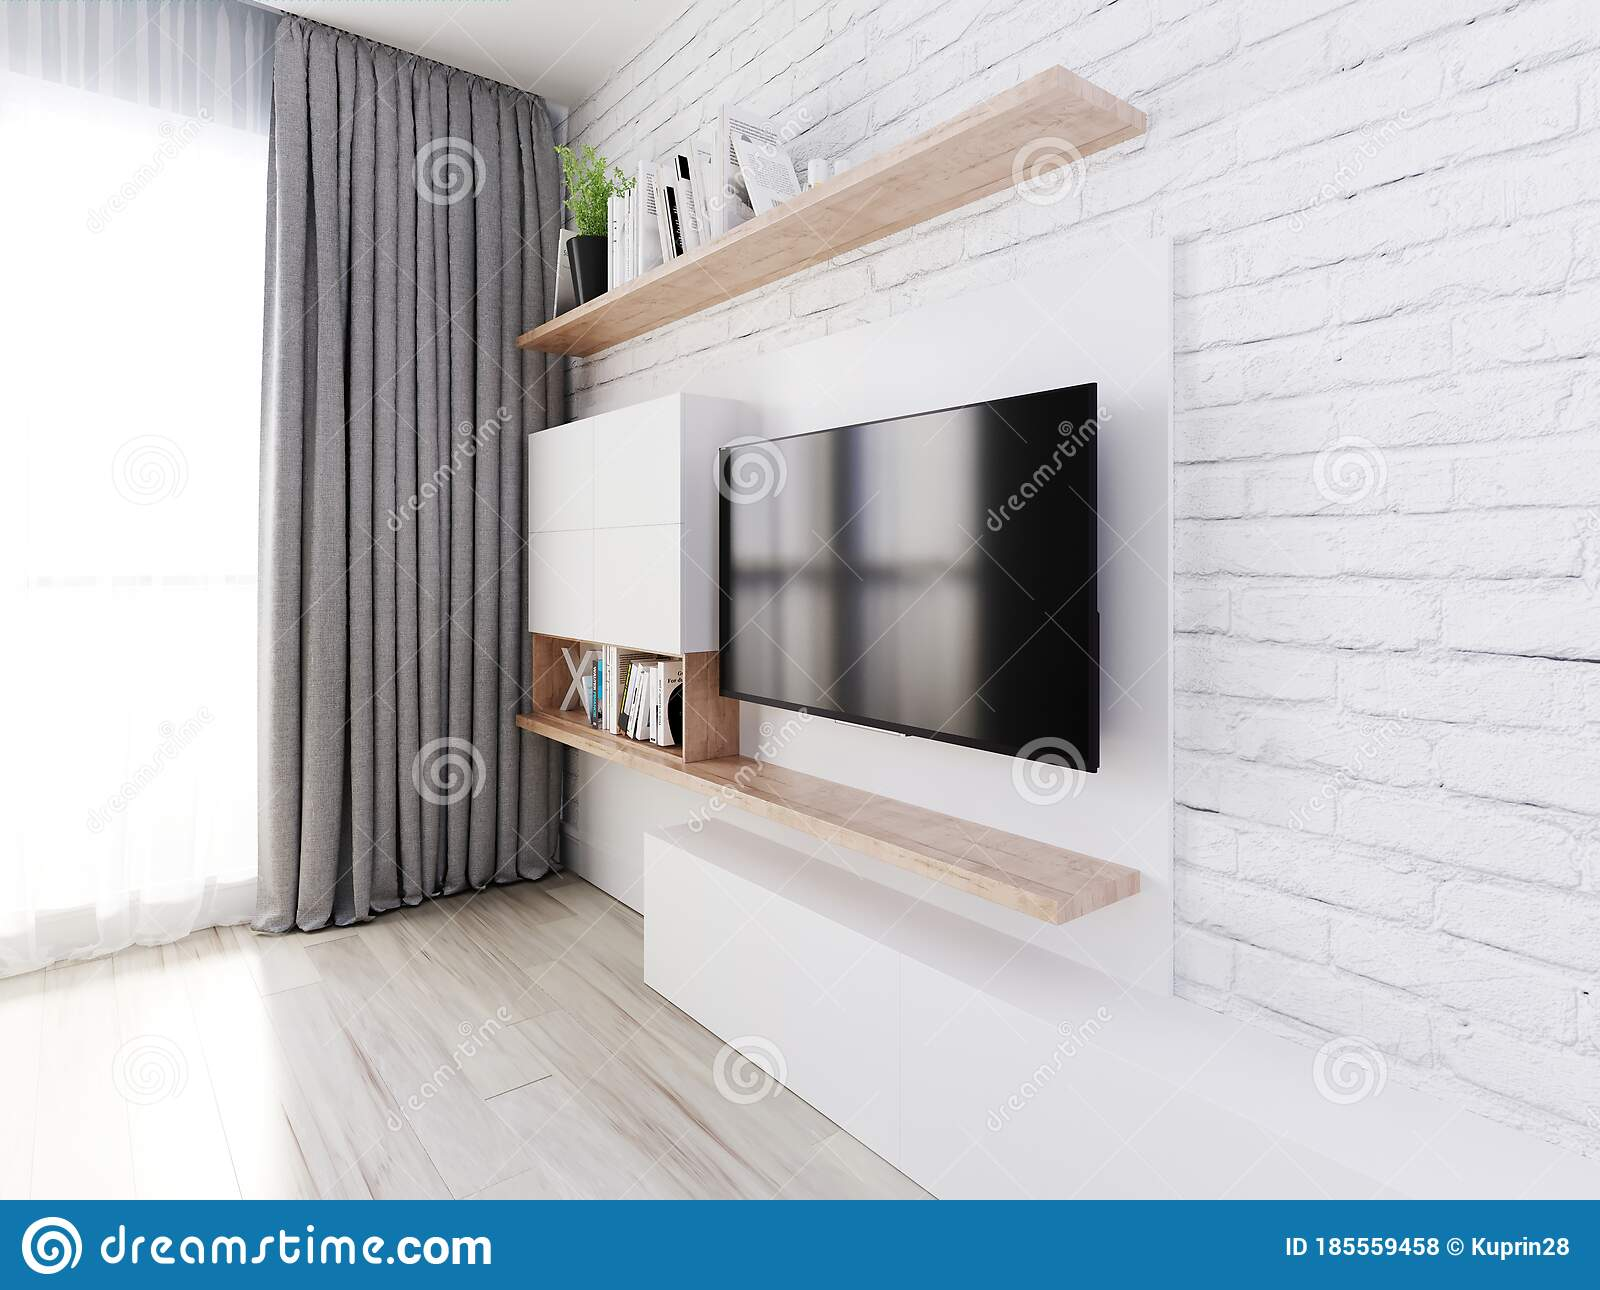 A Tv Unit Tv Wall Tv Set With A Tv And Bookshelves White Decorative Brick Wall Wood Texture And Matt White Lockers Stock Illustration Illustration Of Cabinet Decorative 185559458